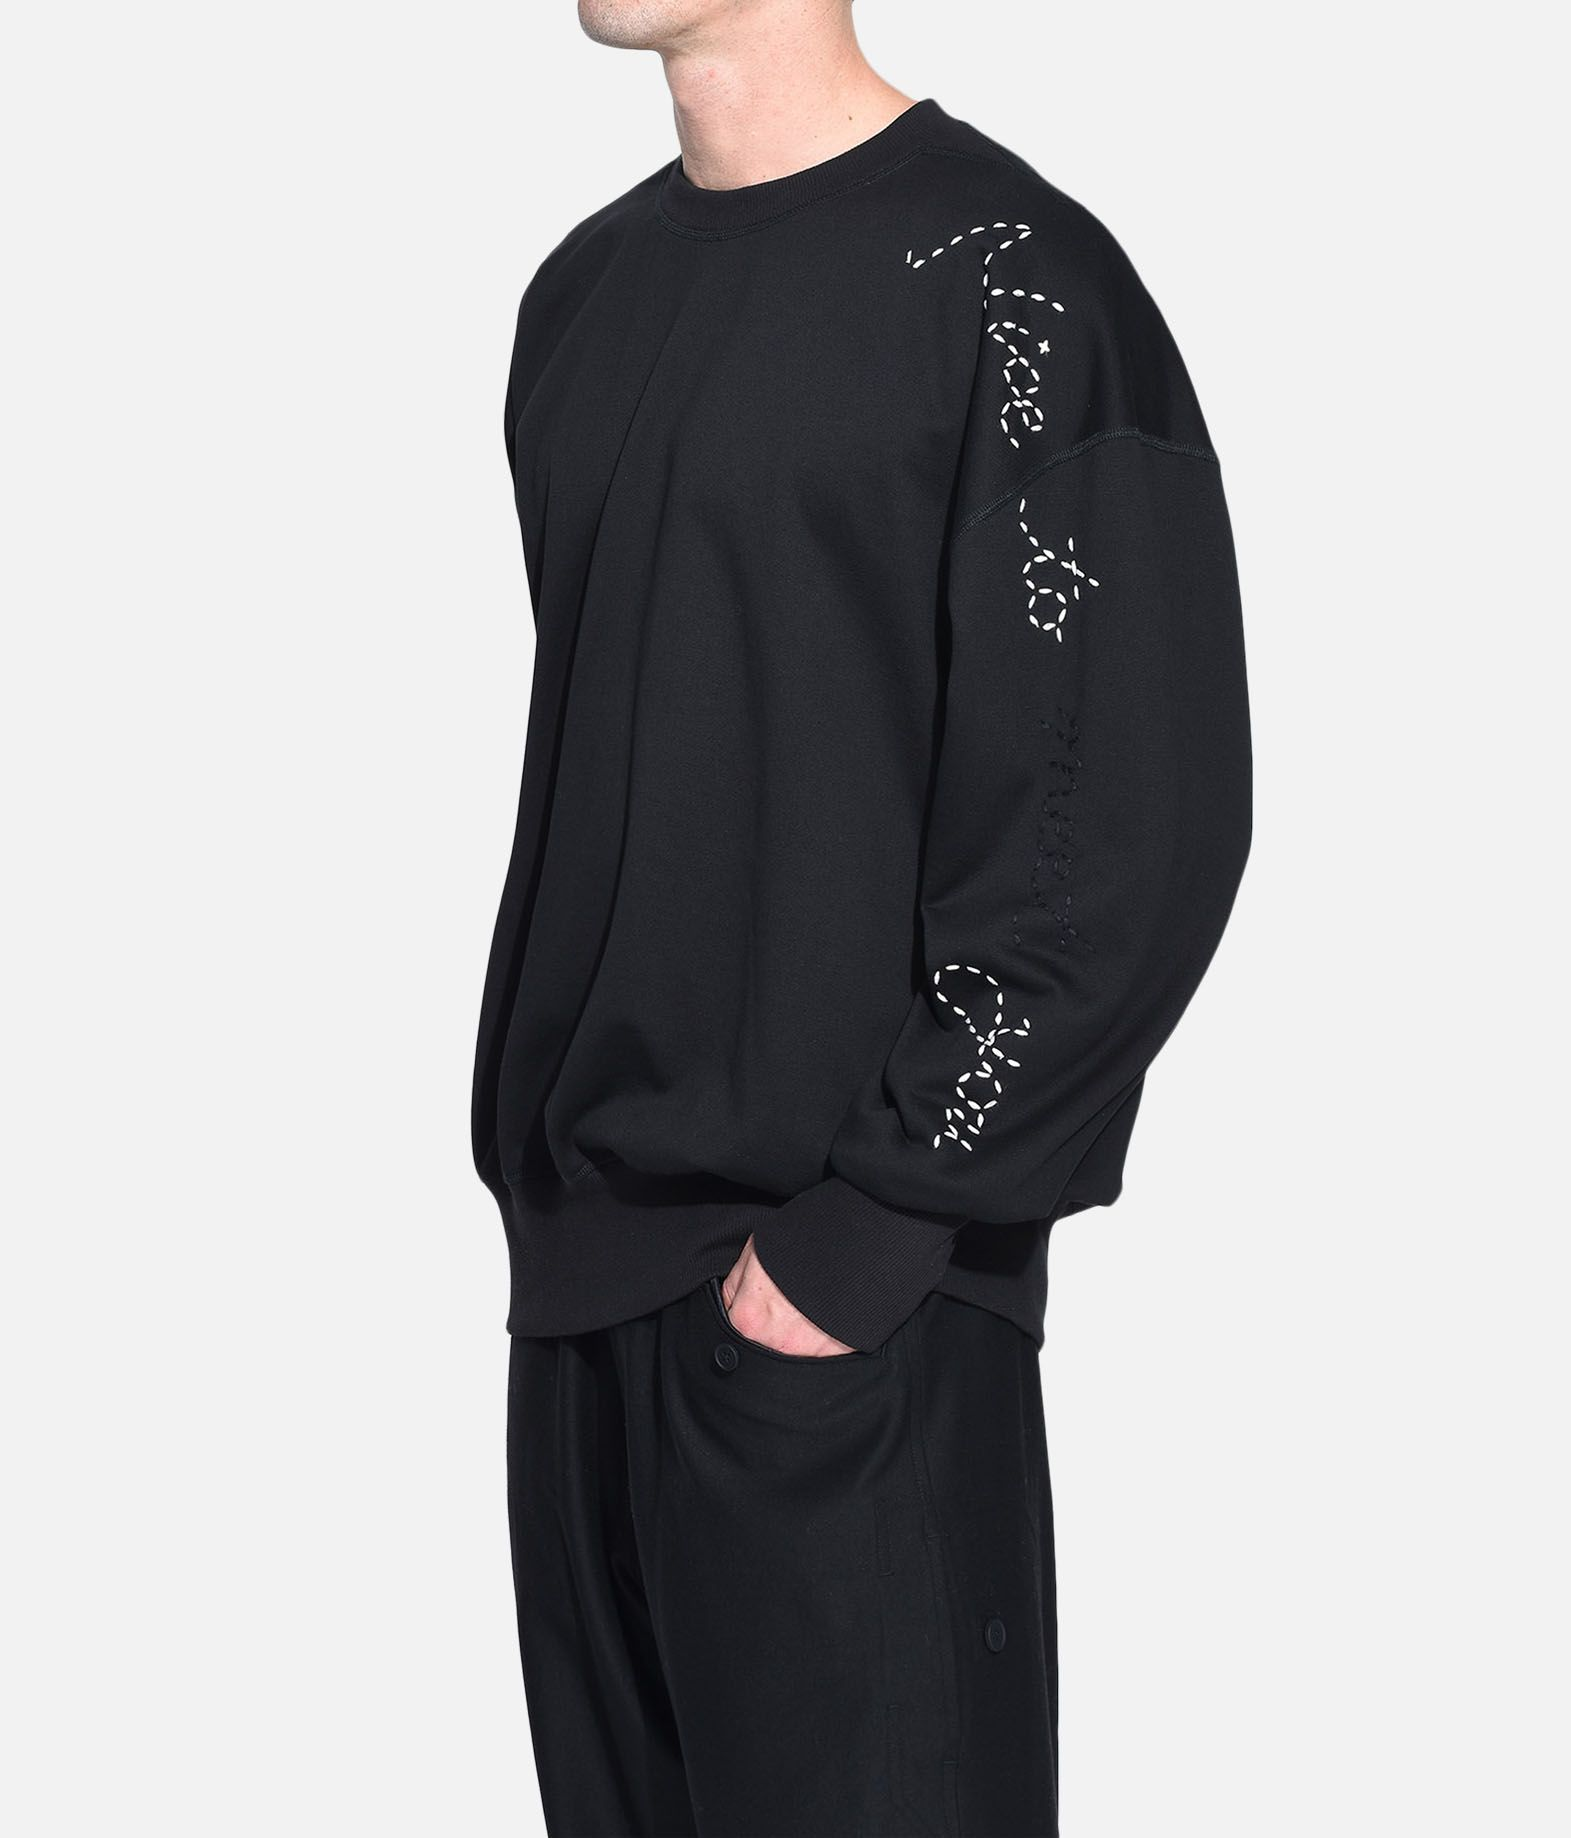 Y-3 Y-3 Sashiko Slogan Sweater スウェット メンズ e